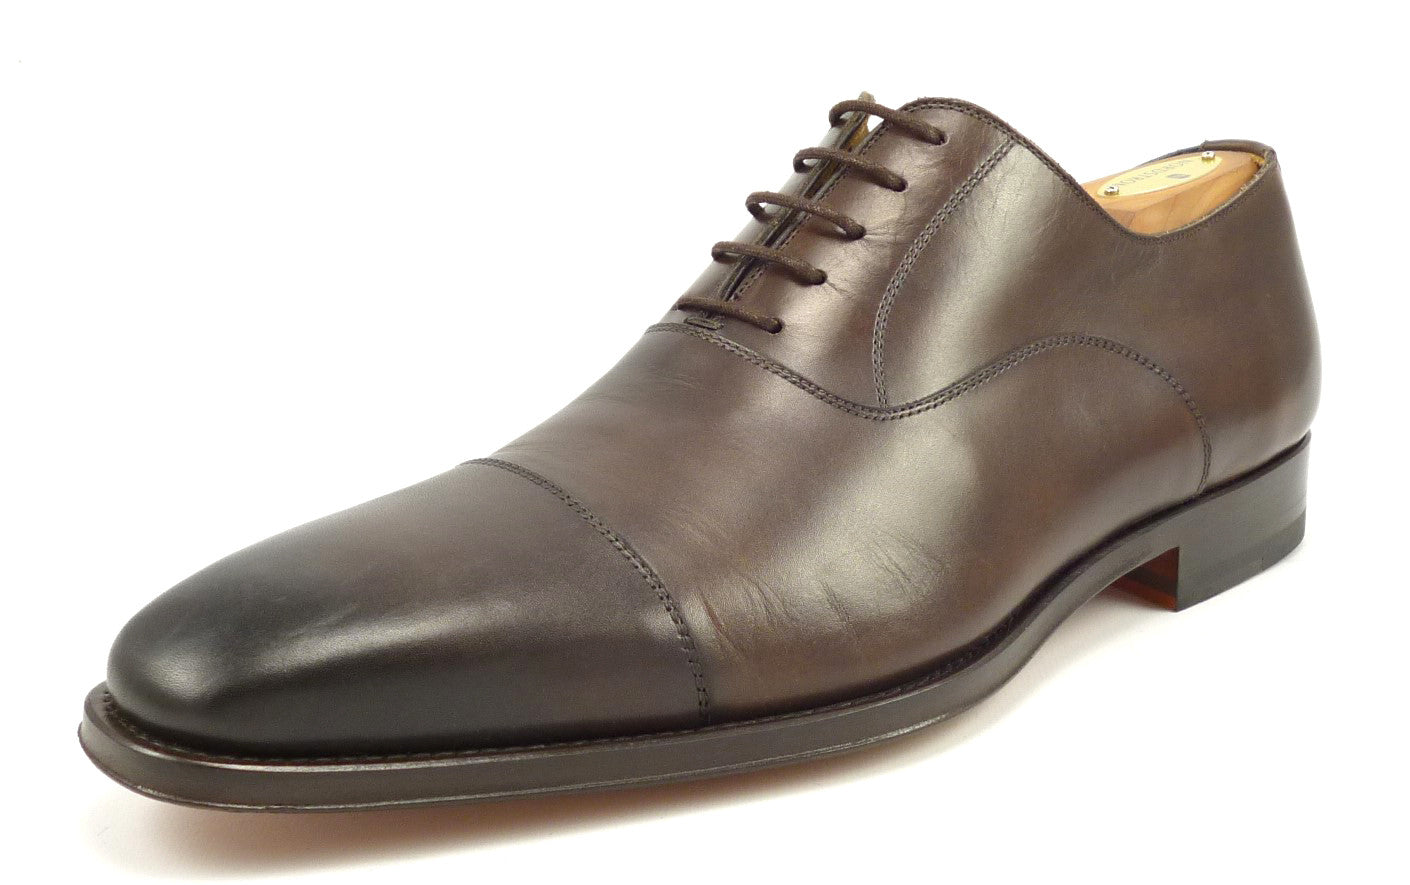 Magnanni Mens Shoes Size 8.5 Leather Cap Toe Oxfords Brown